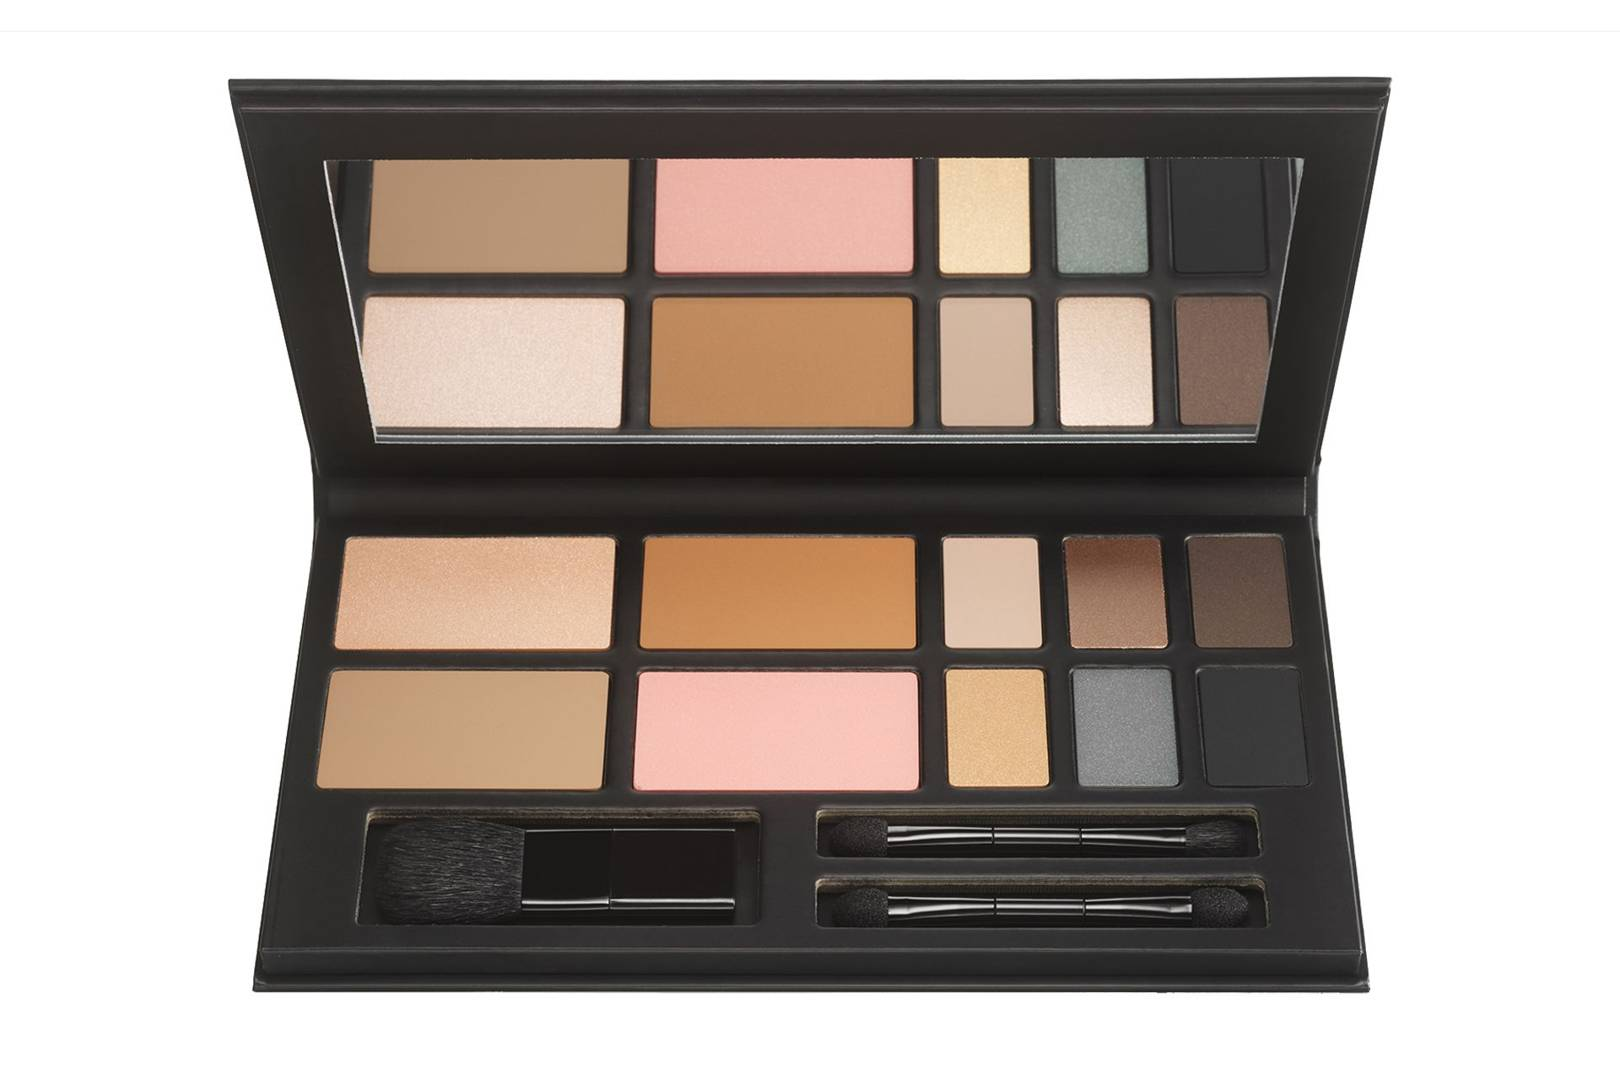 All-in-one makeup palettes: Multi-purpose makeup for travel commuters | Glamour UK